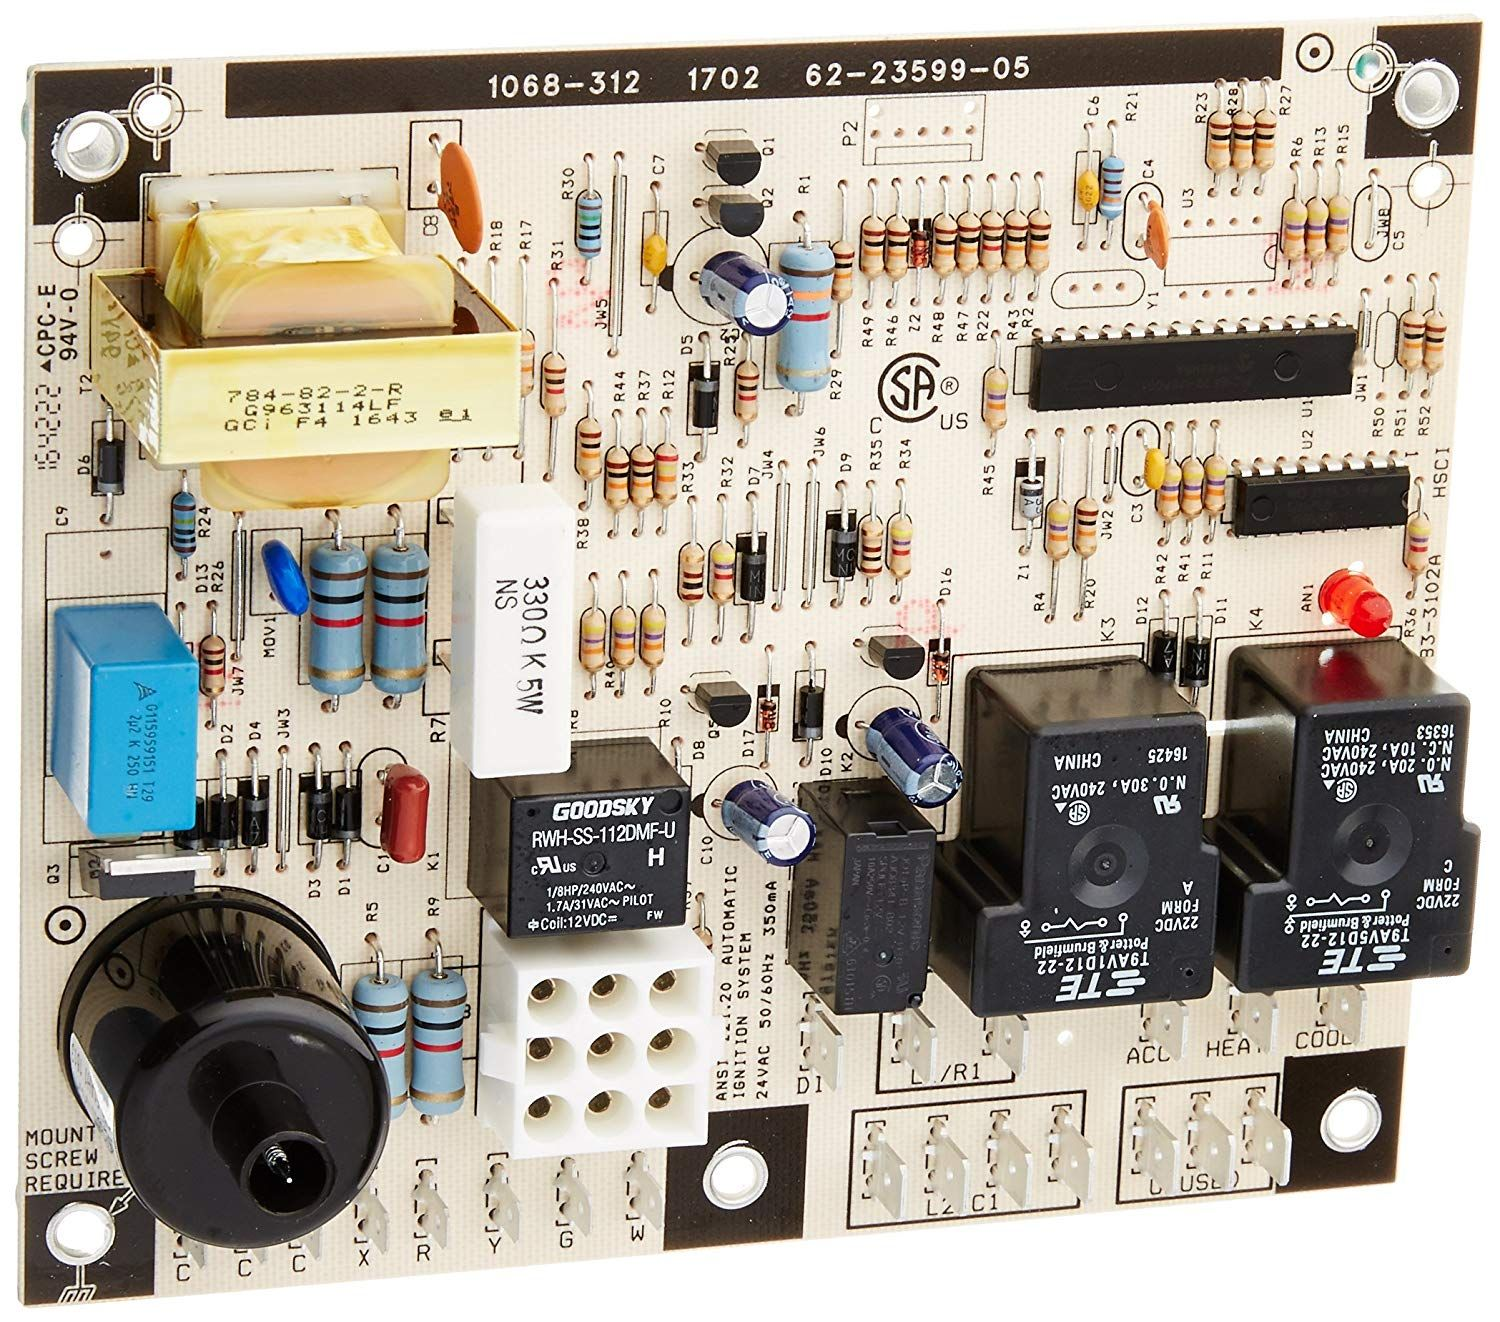 Protech 622359905 Integrated Furnace Control Board